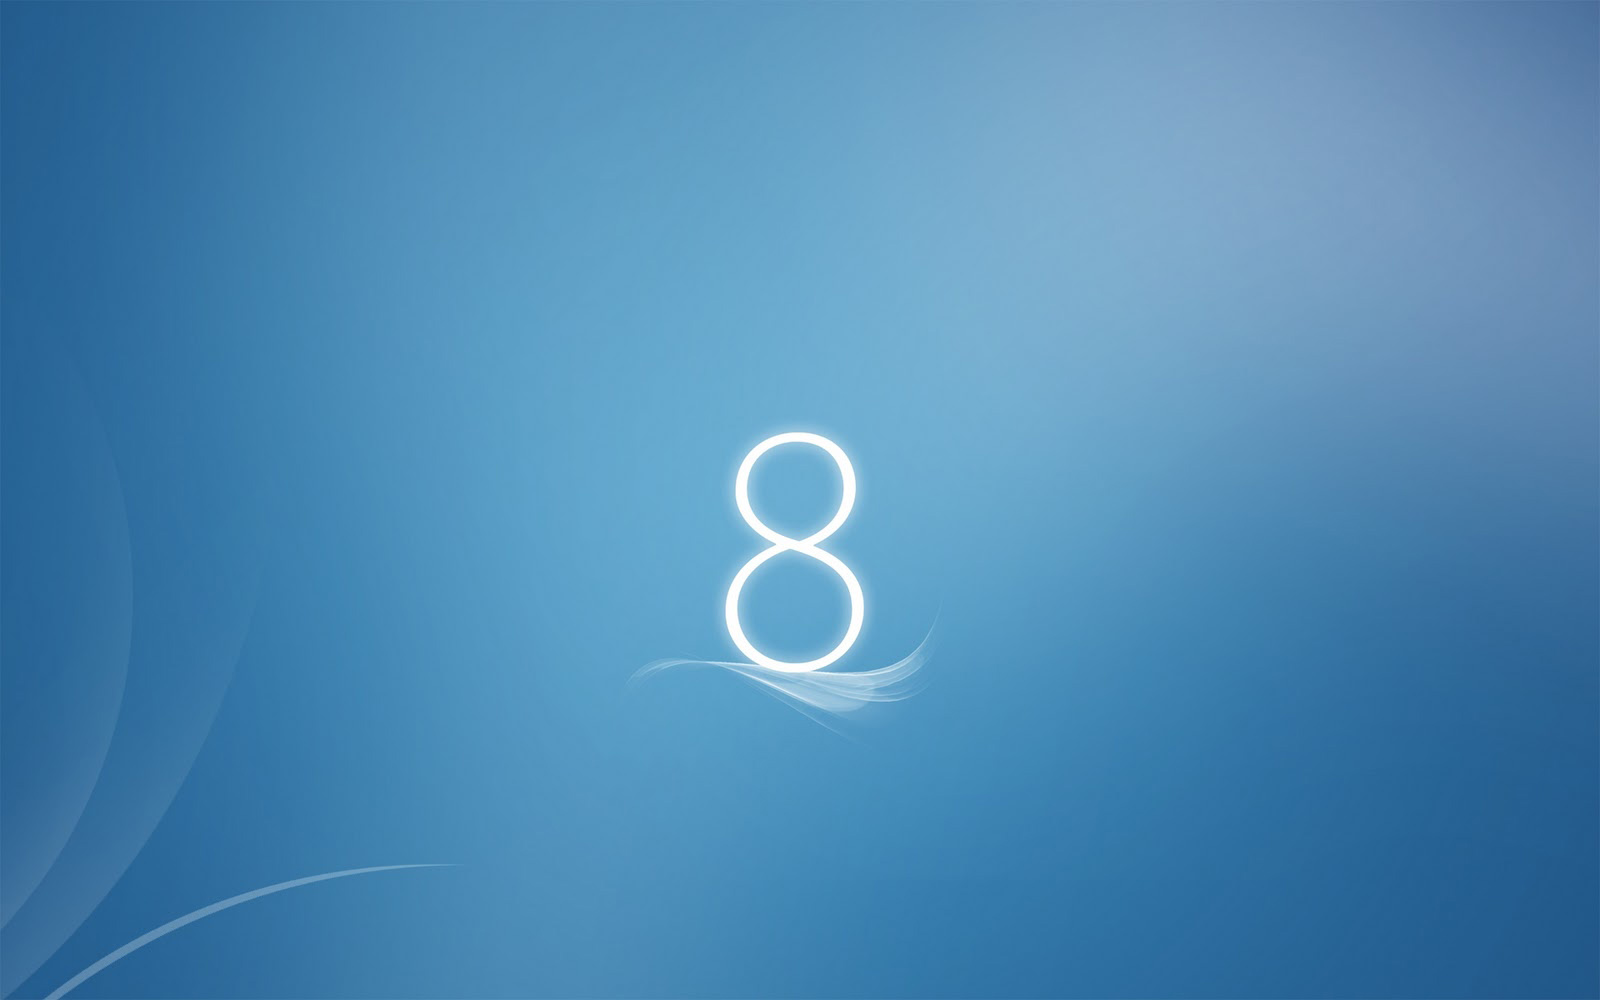 Windows 8 Background Themes HD Wallpapers 1600x1000